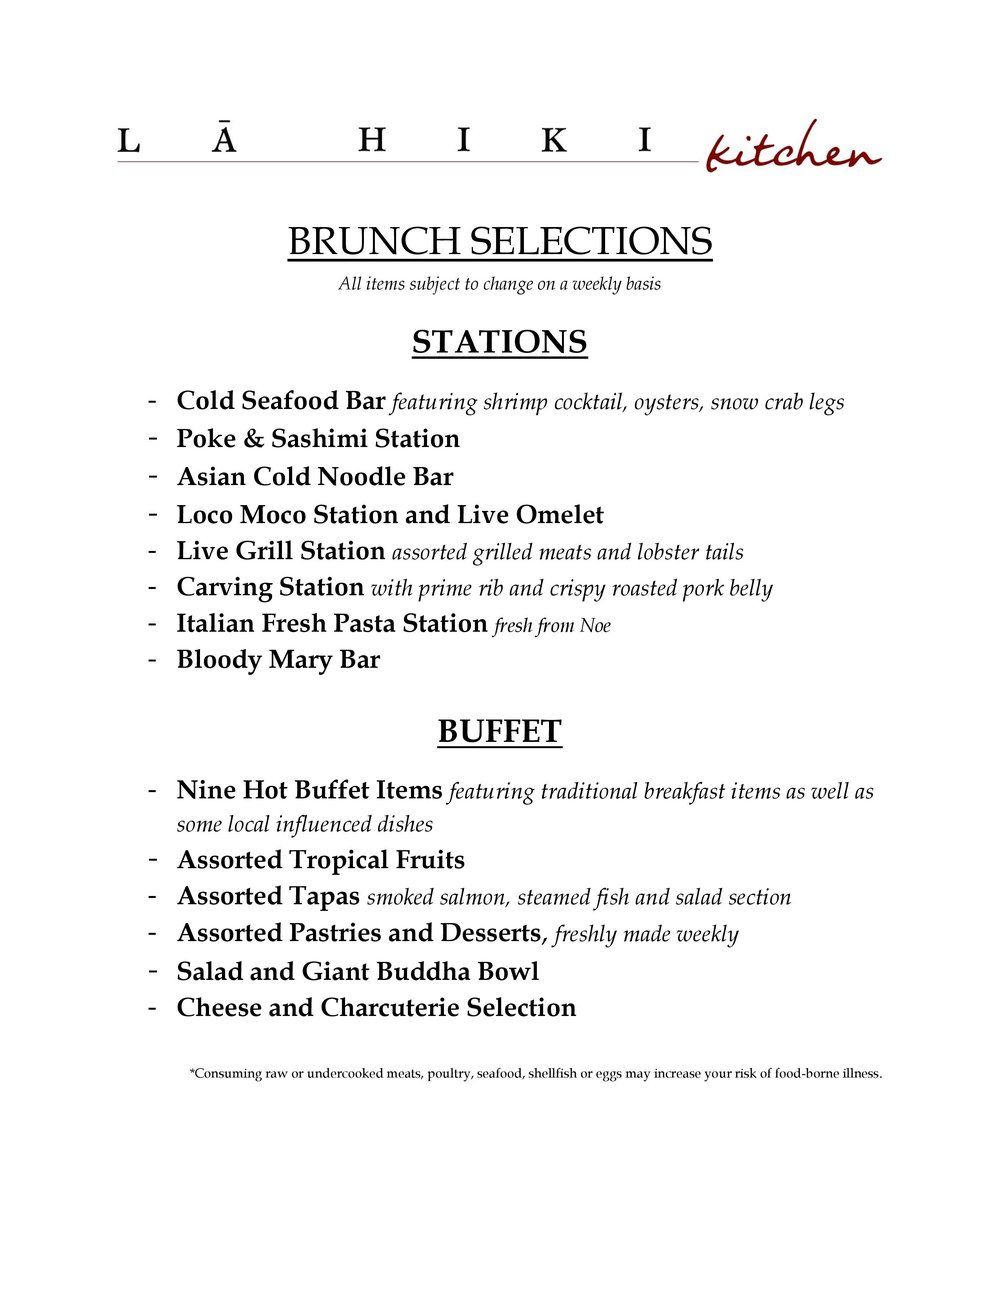 Brunch Menu 11.2018-page-001.jpg